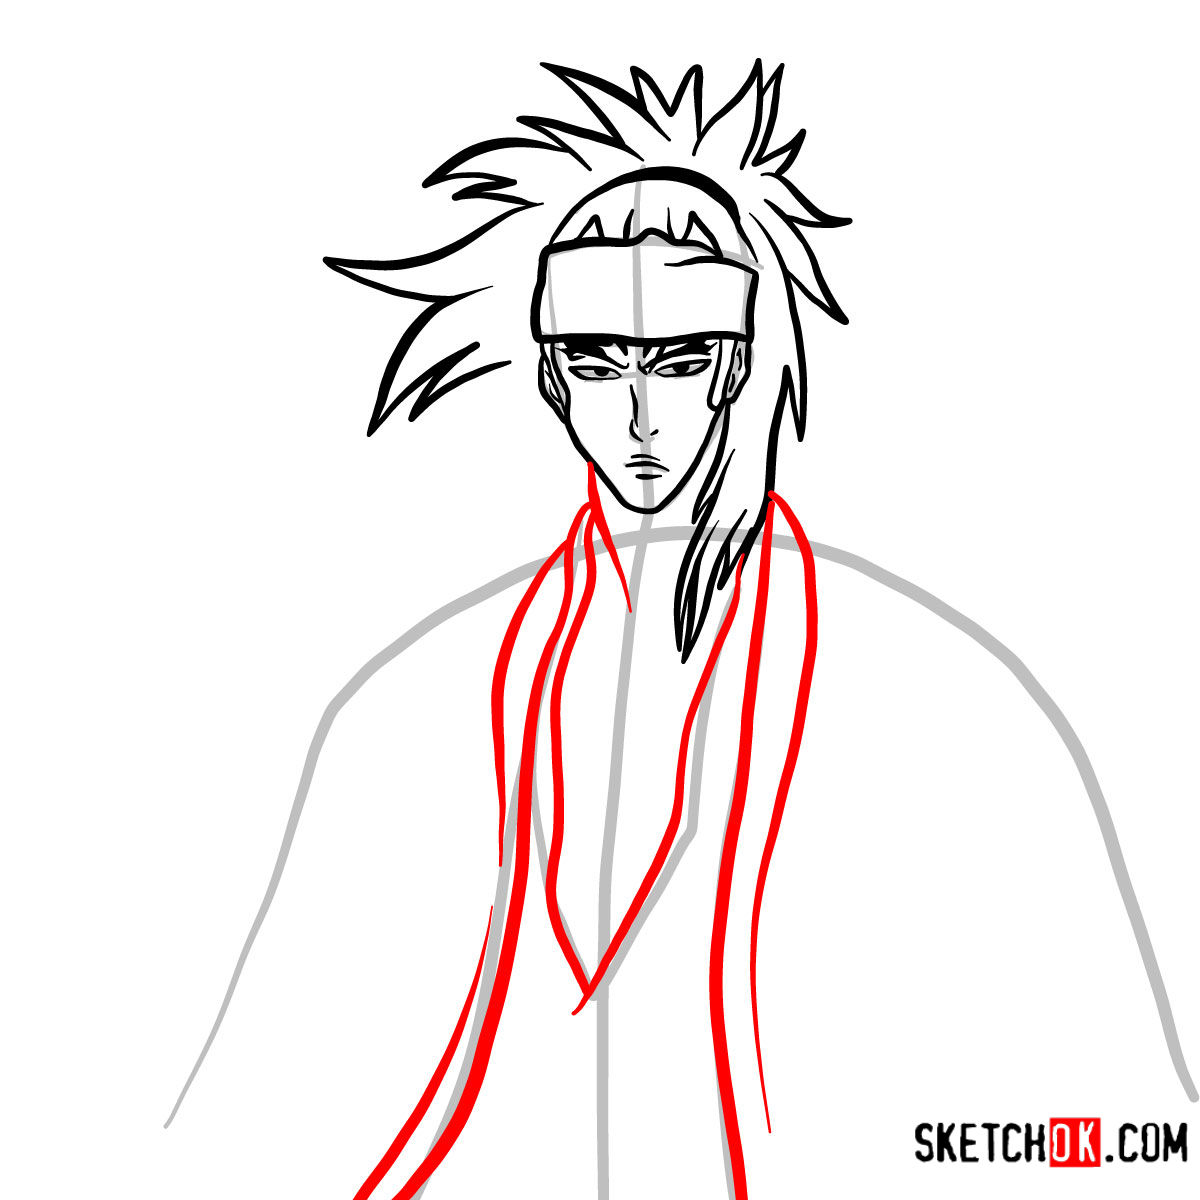 How to draw Renji Abarai's portrait | Bleach - step 08